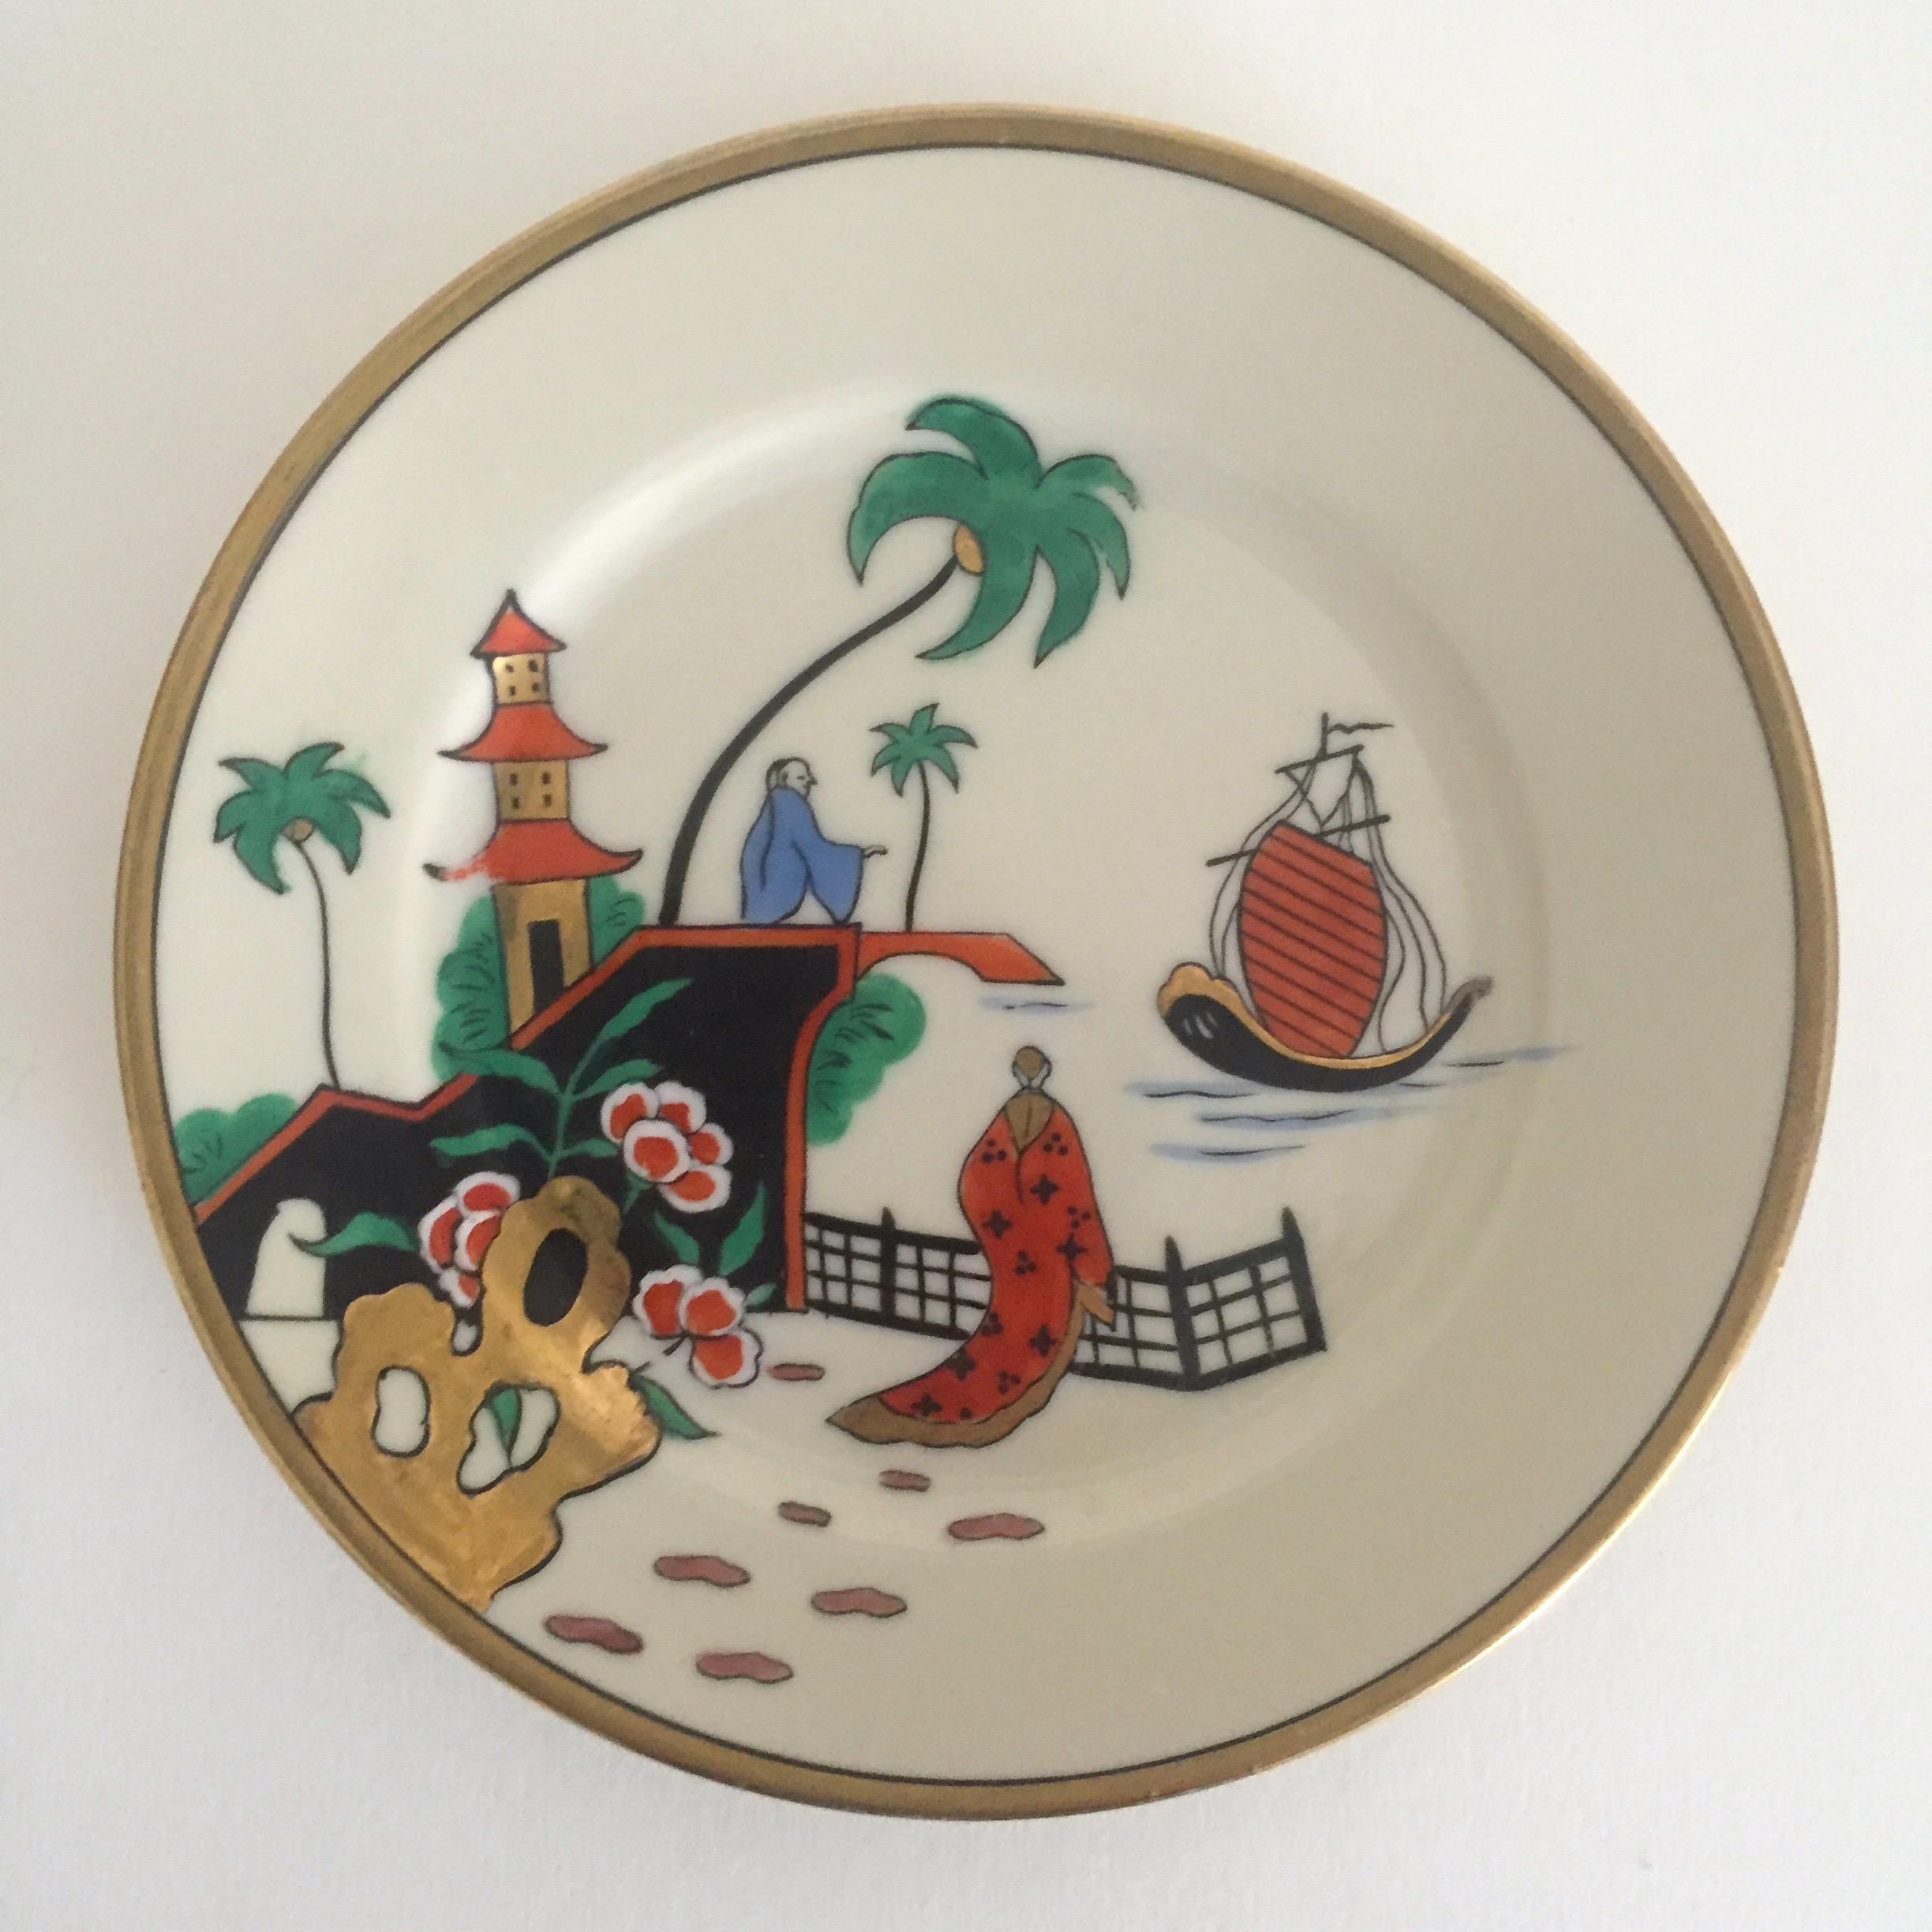 Vintage Noritake Japan Mid Century Modern Hand Painted Decorative Plates - a Pair - Image 3 : hand painted decorative plates - pezcame.com